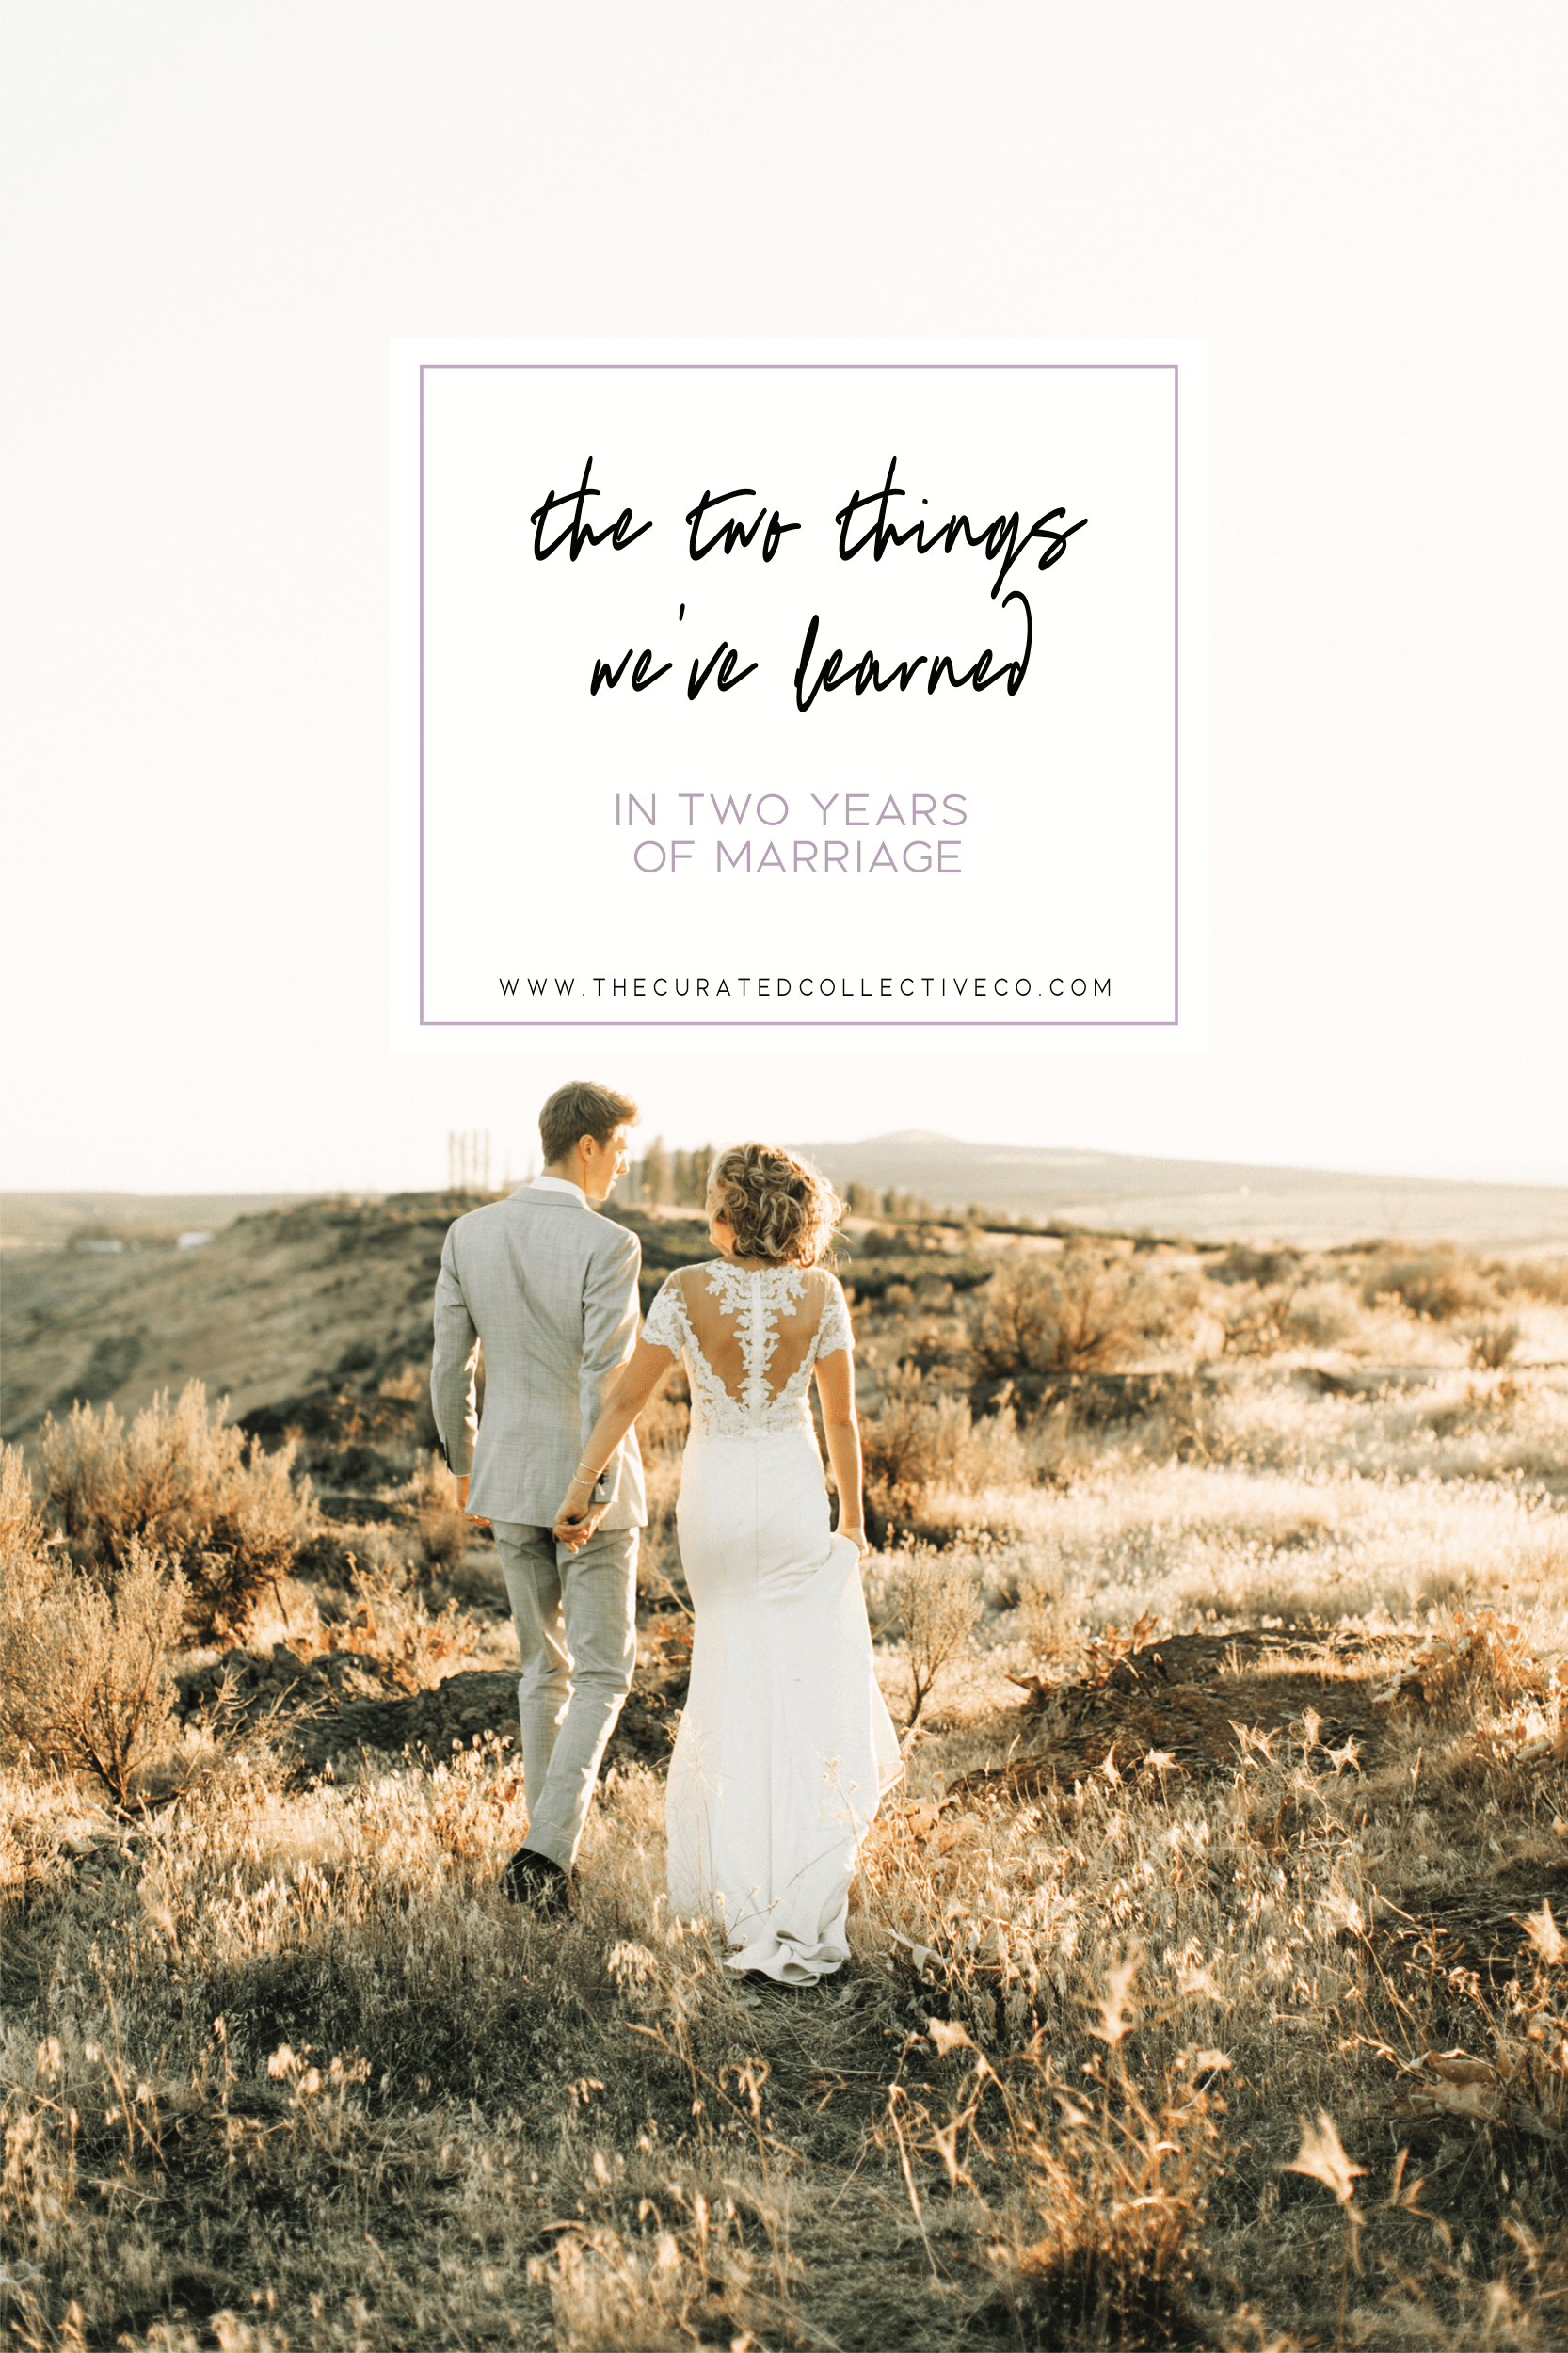 What We Ve Learned In Two Years Of Marriage The Curated Collective Marriage Wedding Book Wedding Pictures